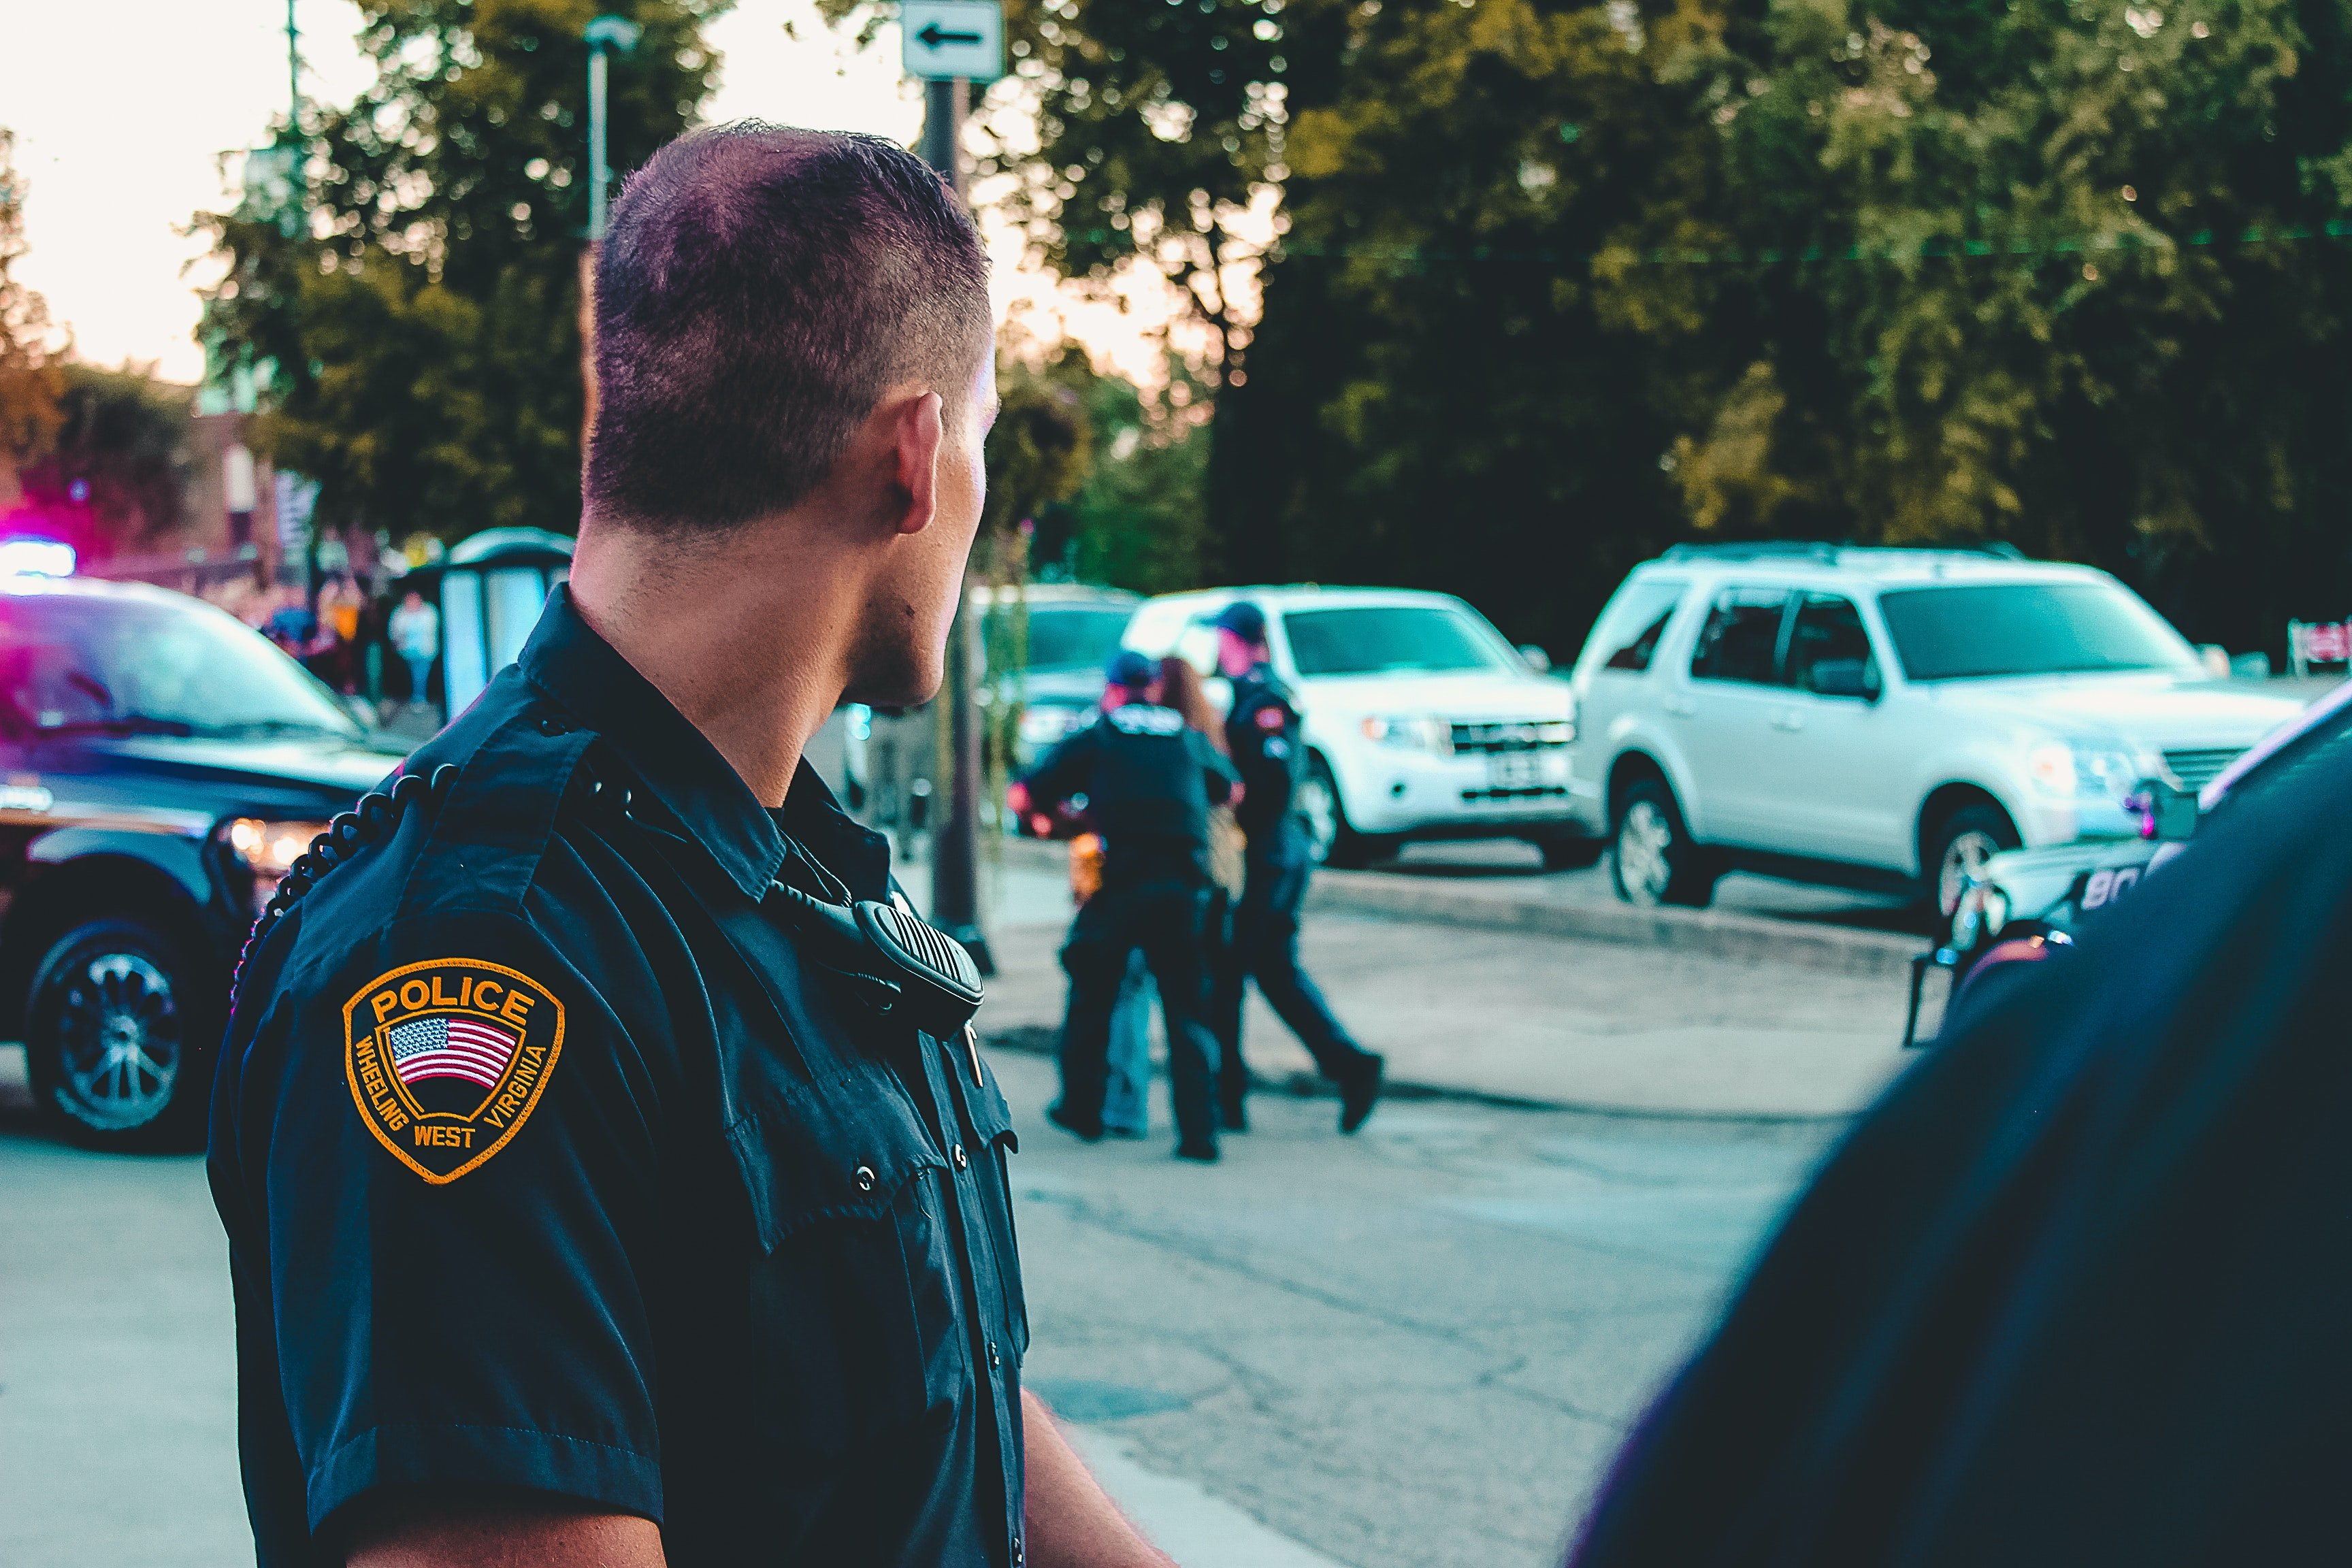 Pictured - A police officer wearing his uniform | Source: Pexels